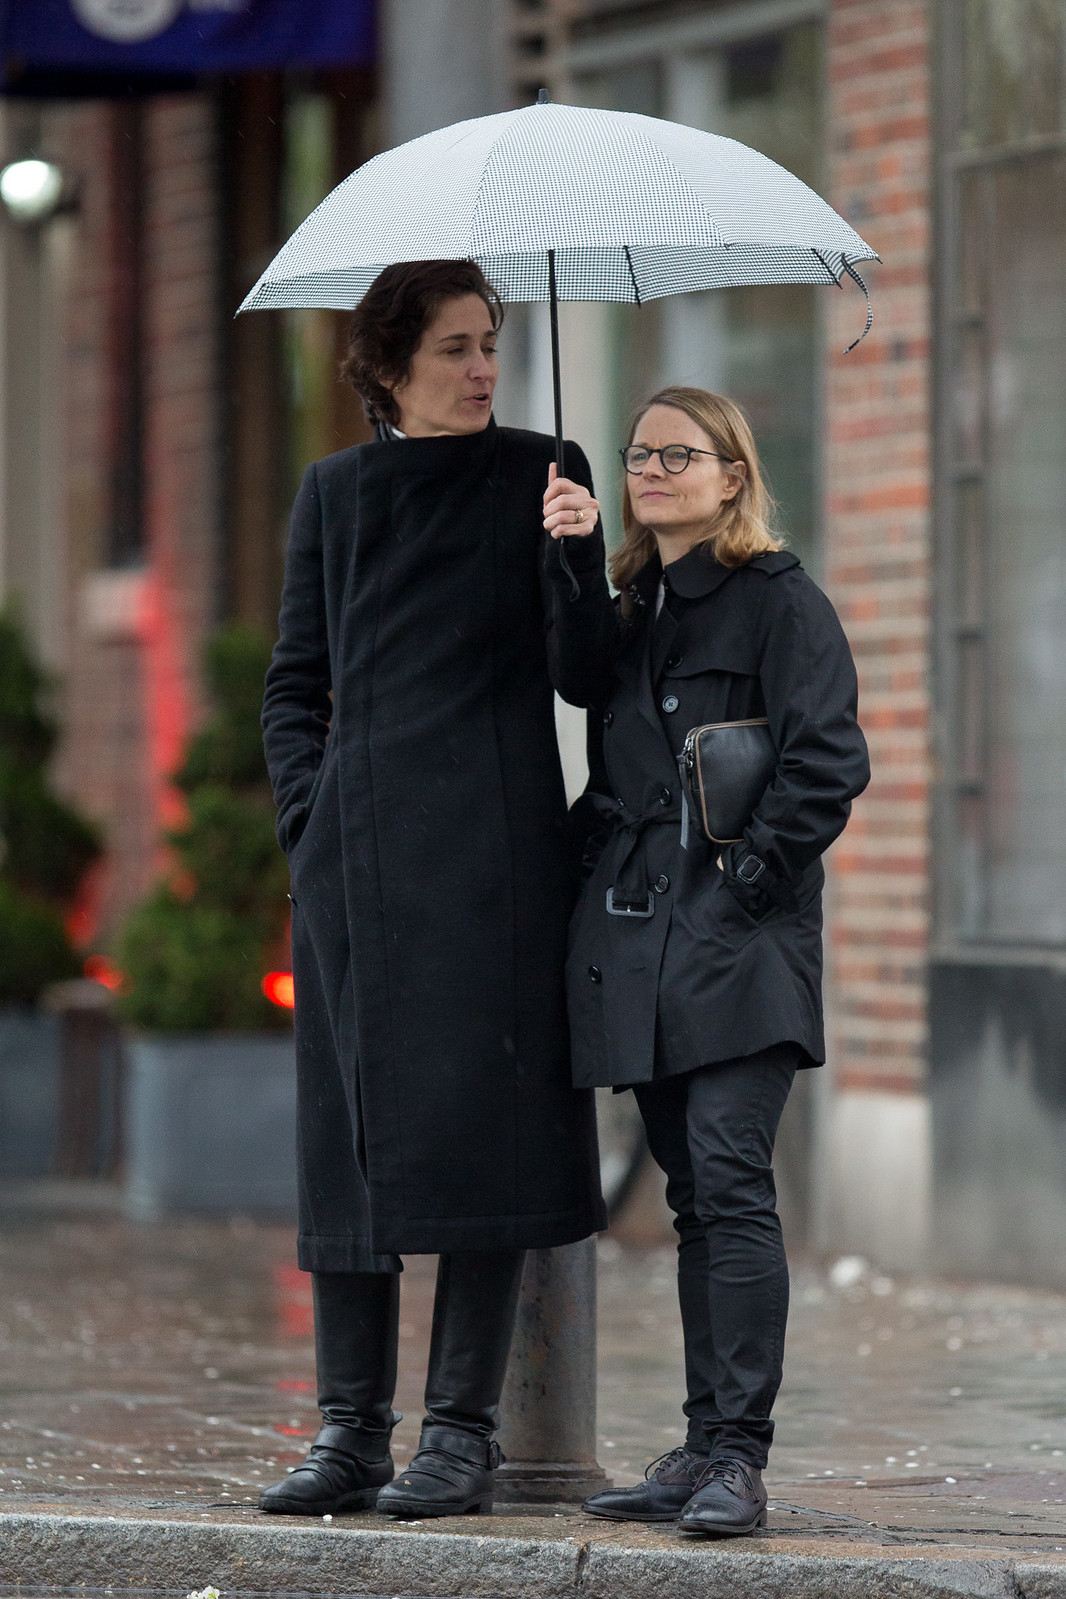 Jodie Foster and wife Alexandra Hedison out in NYC 4/23/15 ...